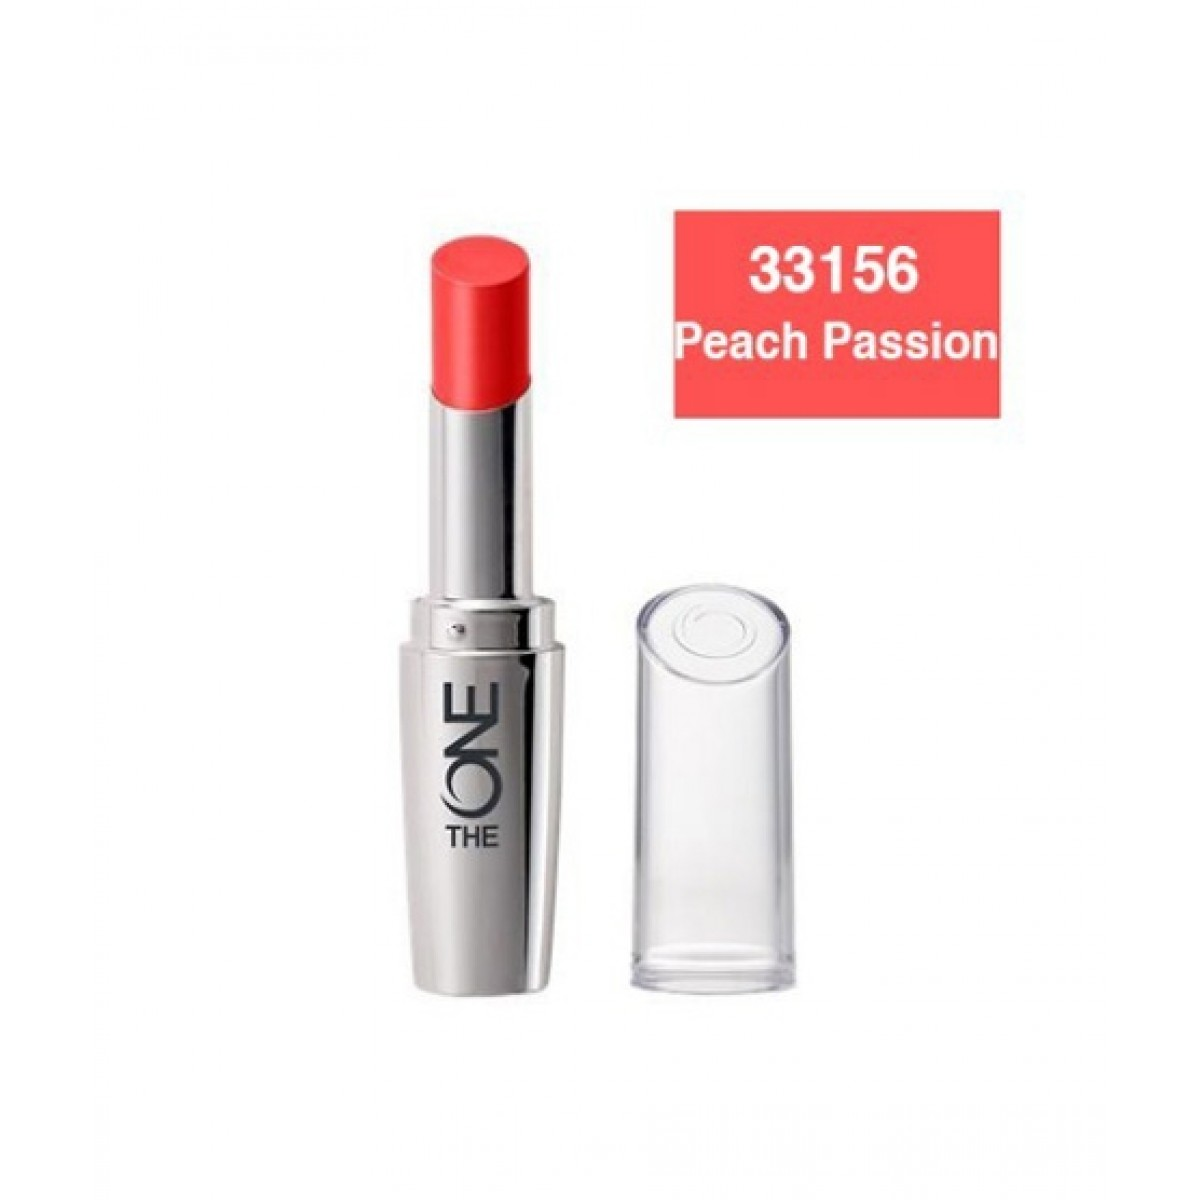 Oriflame Sweden The One Colour Obsession Lipstick Peach Passion (35156)